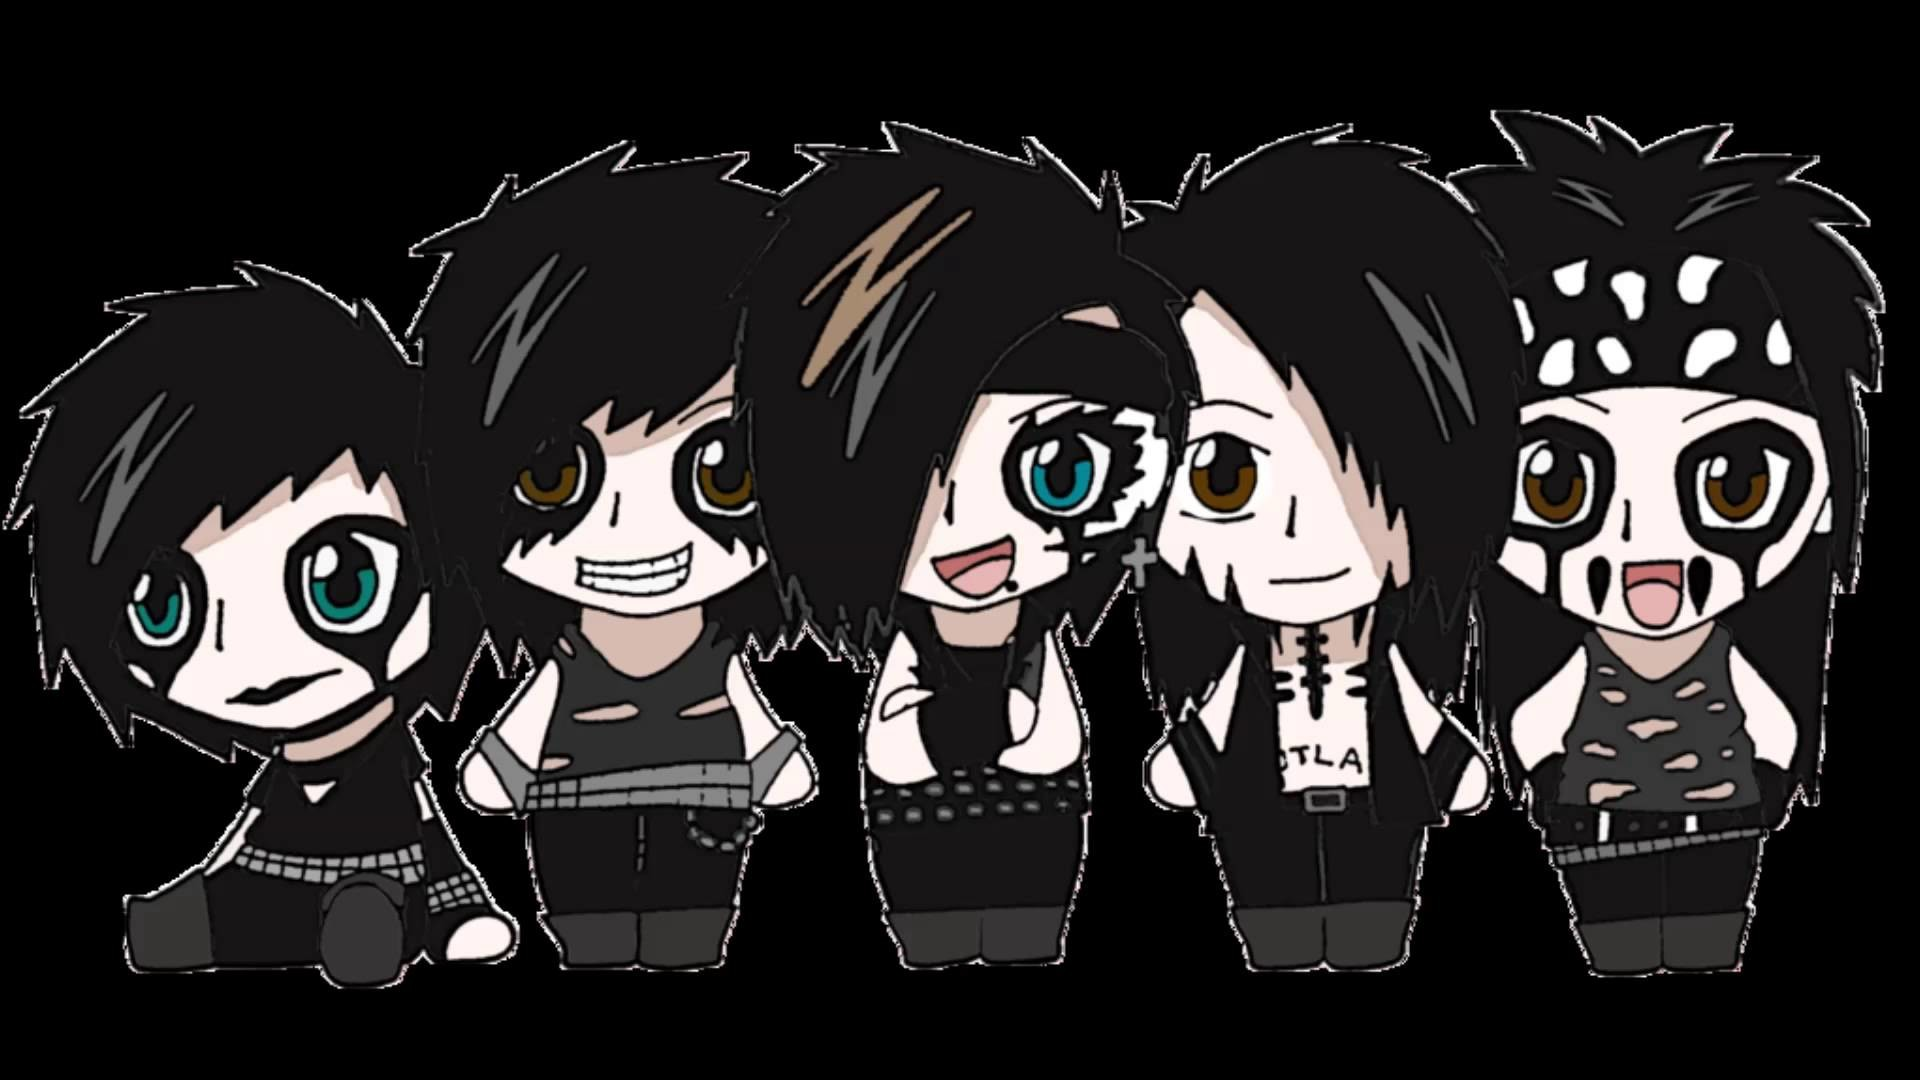 Black Veil Brides Background 64 Images